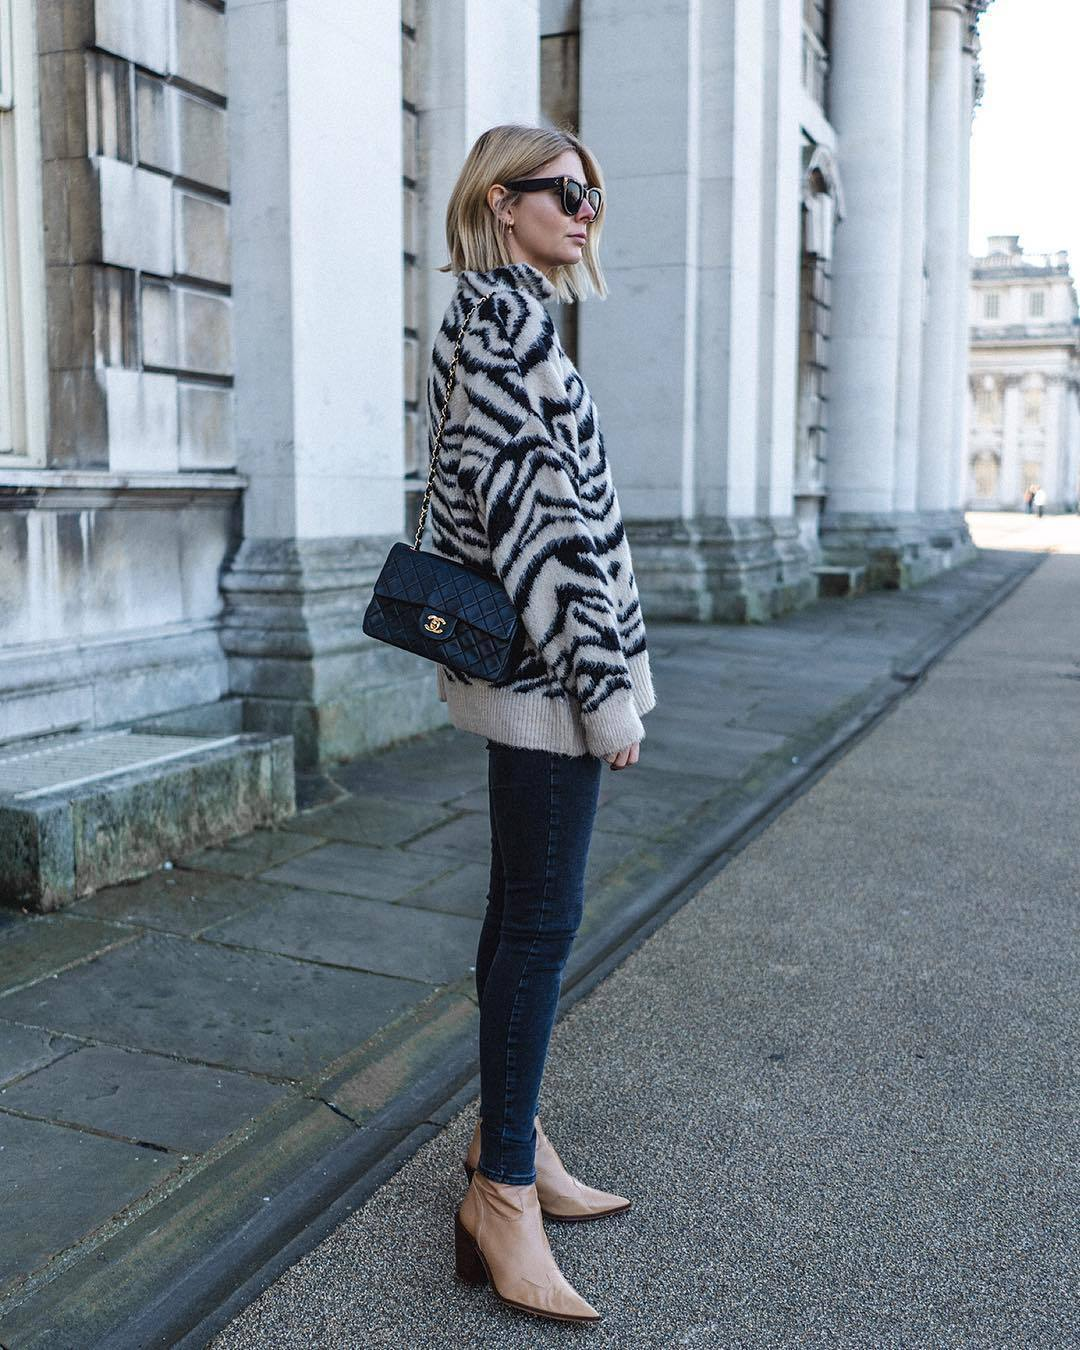 sweater oversized sweater zebra print ankle boots heel boots skinny jeans chanel bag black bag